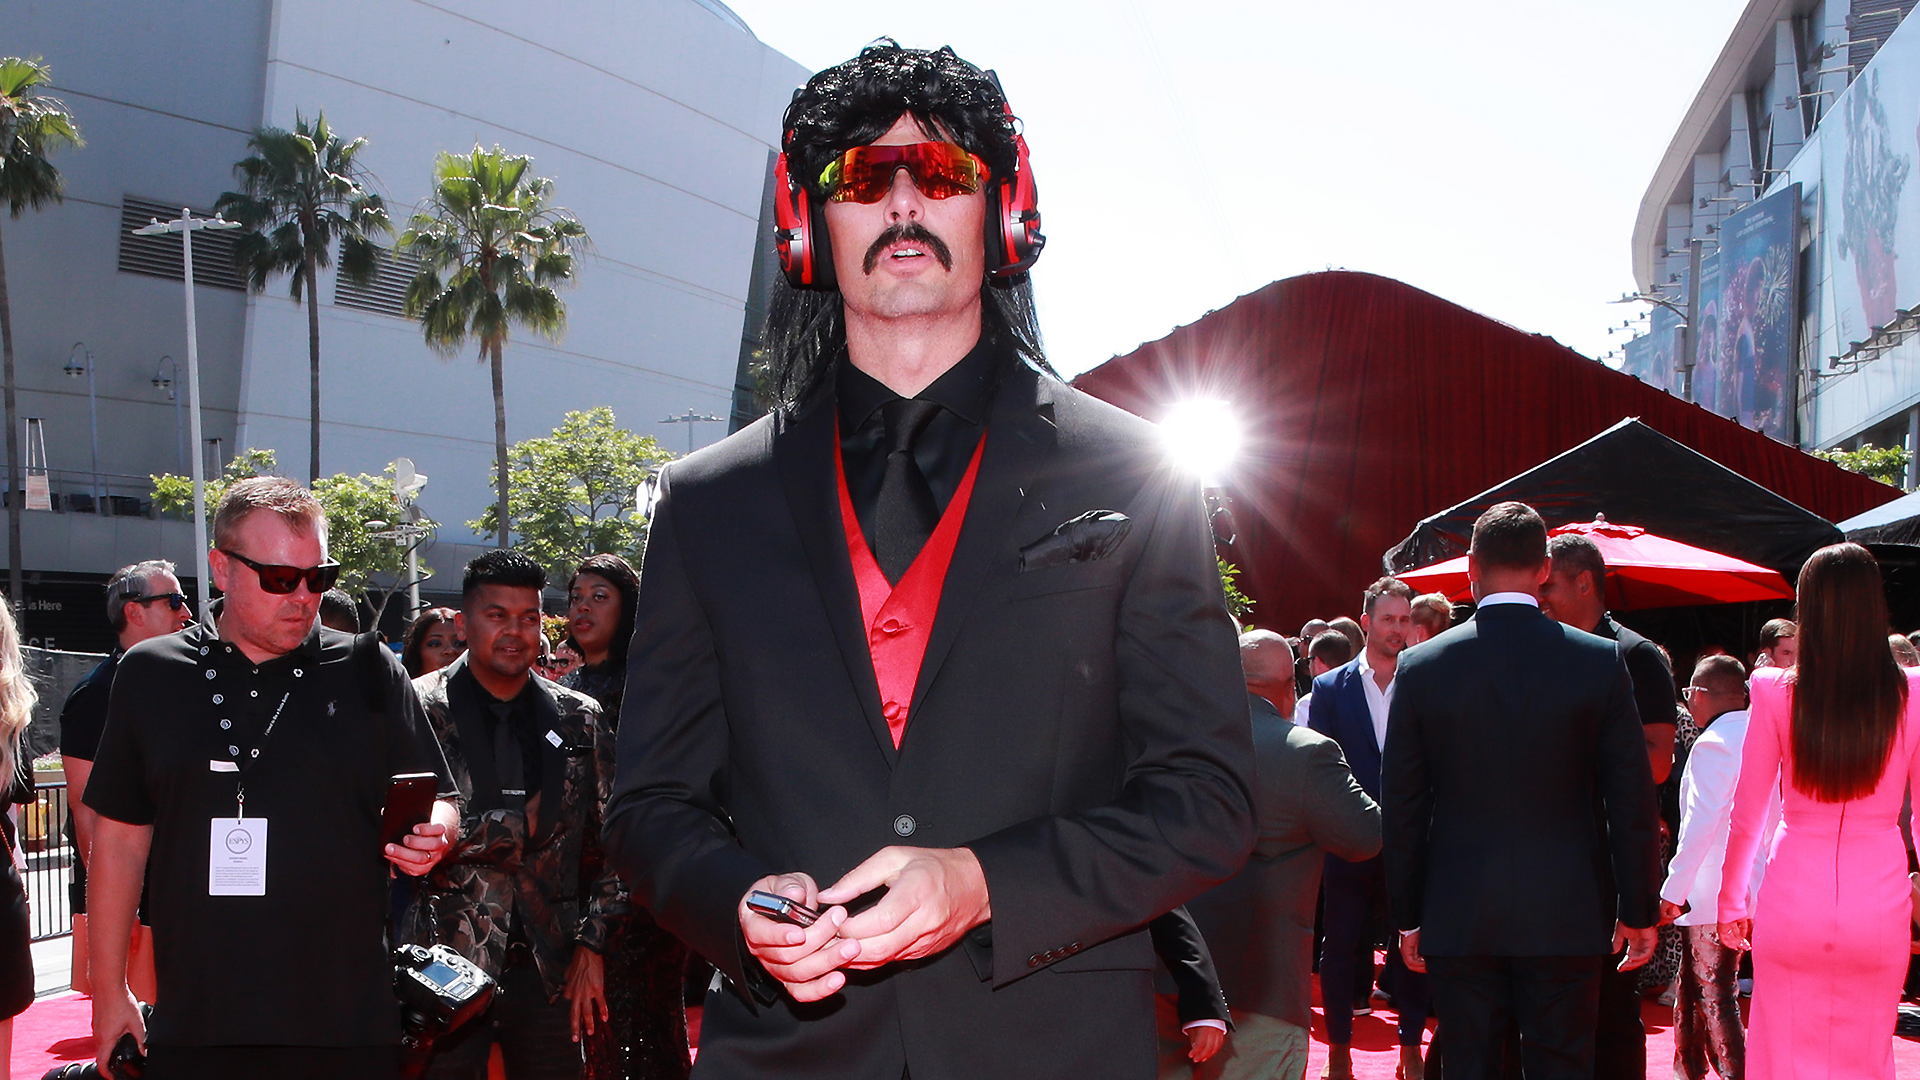 Why is Dr Disrespect banned on Twitch? Here's what we know